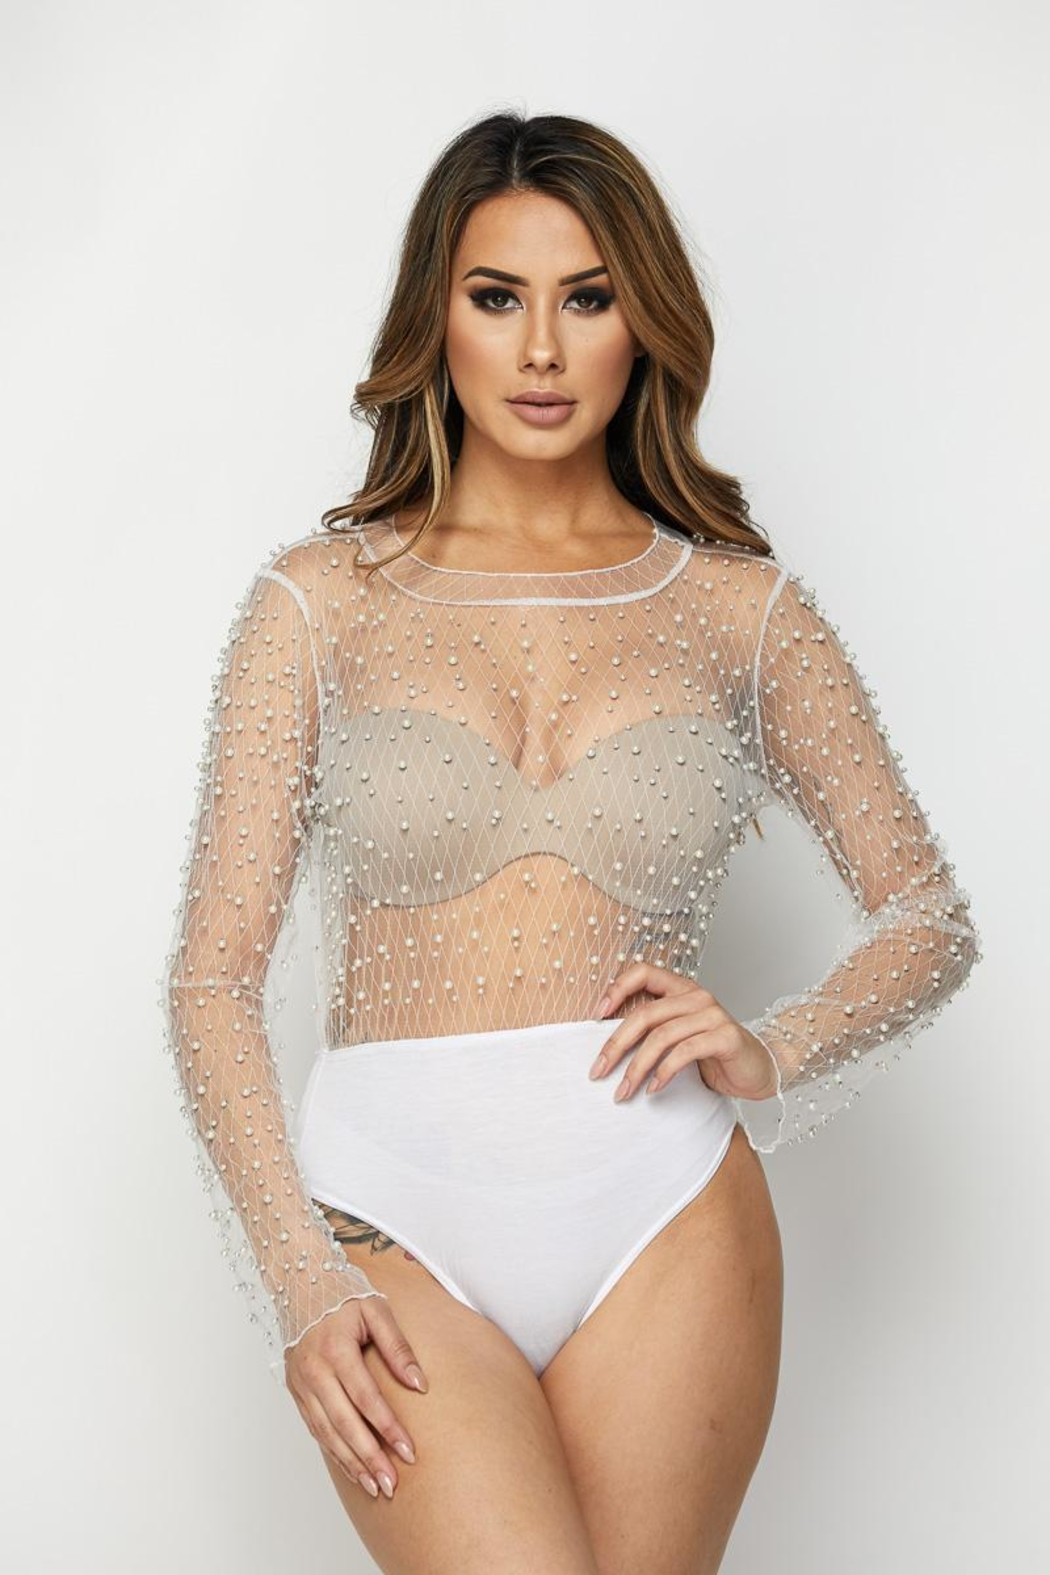 hot and delicious Pearl Mesh Bodysuit from New York by Dor L Dor ... 4cec407cc